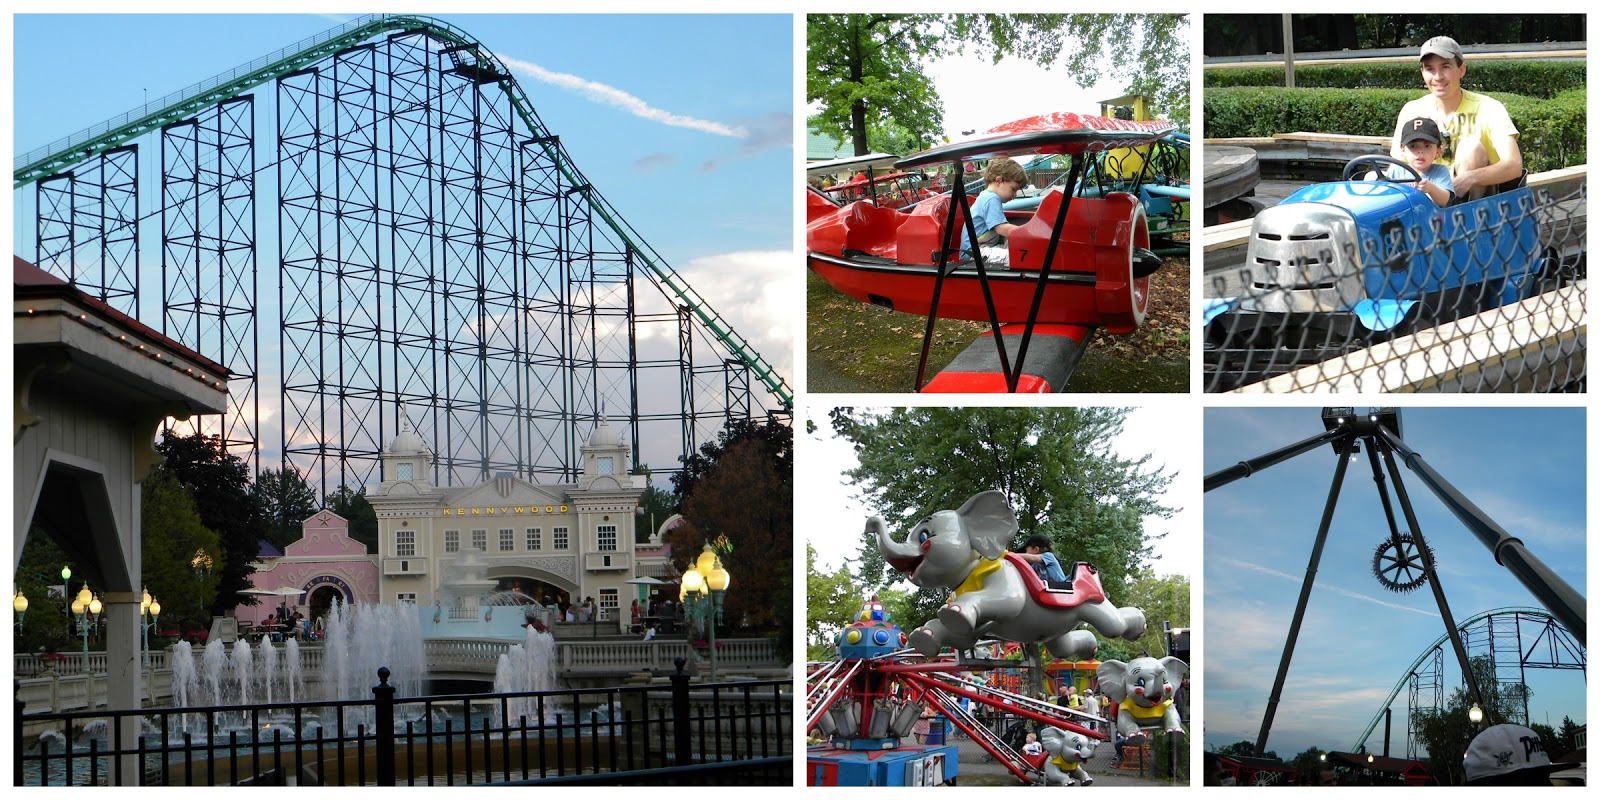 If Youve Never Been To Kennywood Its A Great Day Of Family Fun And Now You Can Save On Admission 7 Off The Regular Price